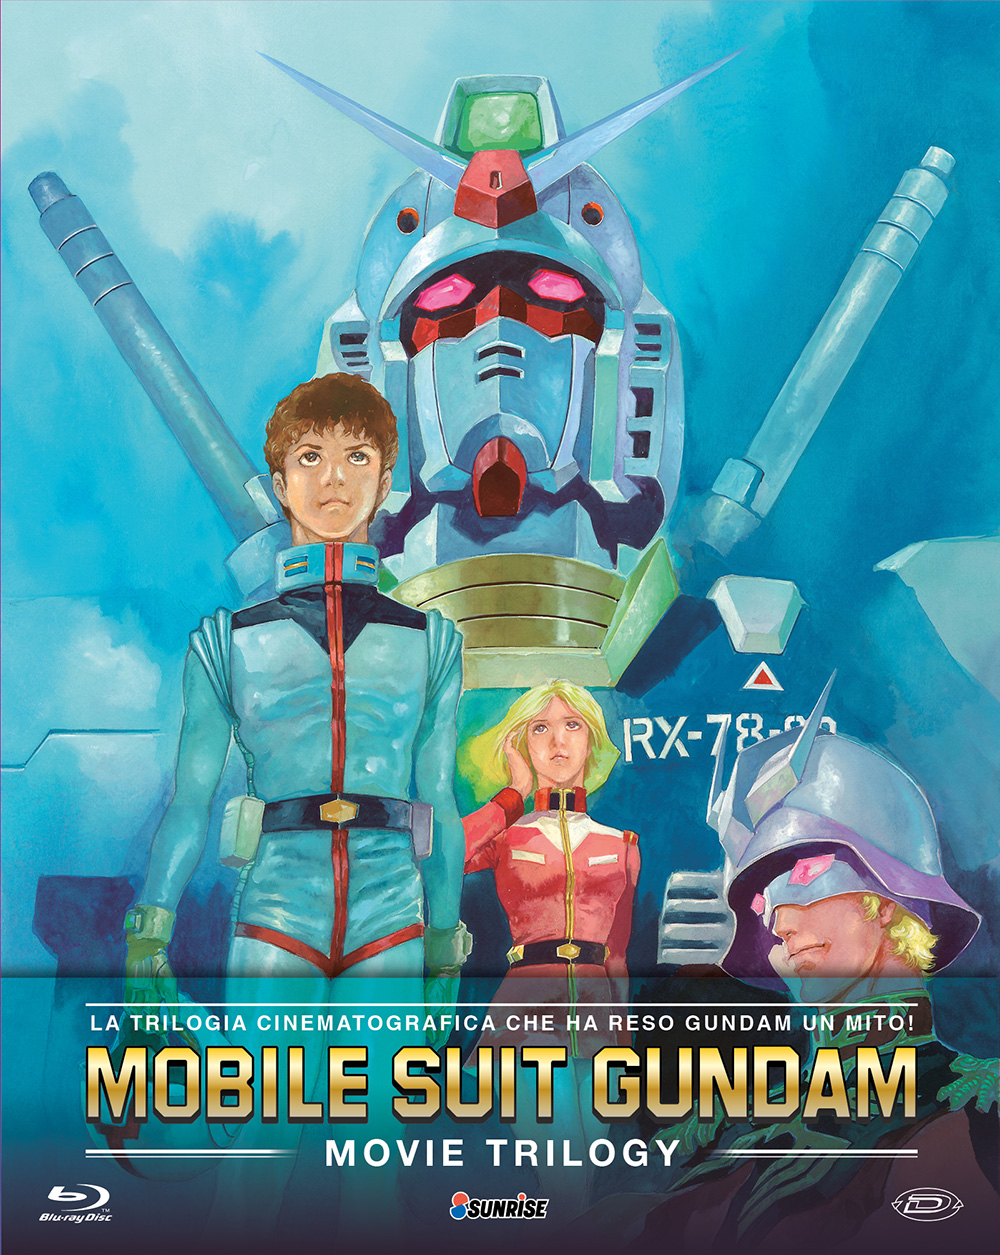 COF.MOBILE SUIT GUNDAM - THE MOVIES COLLECTION (3 BLU-RAY)